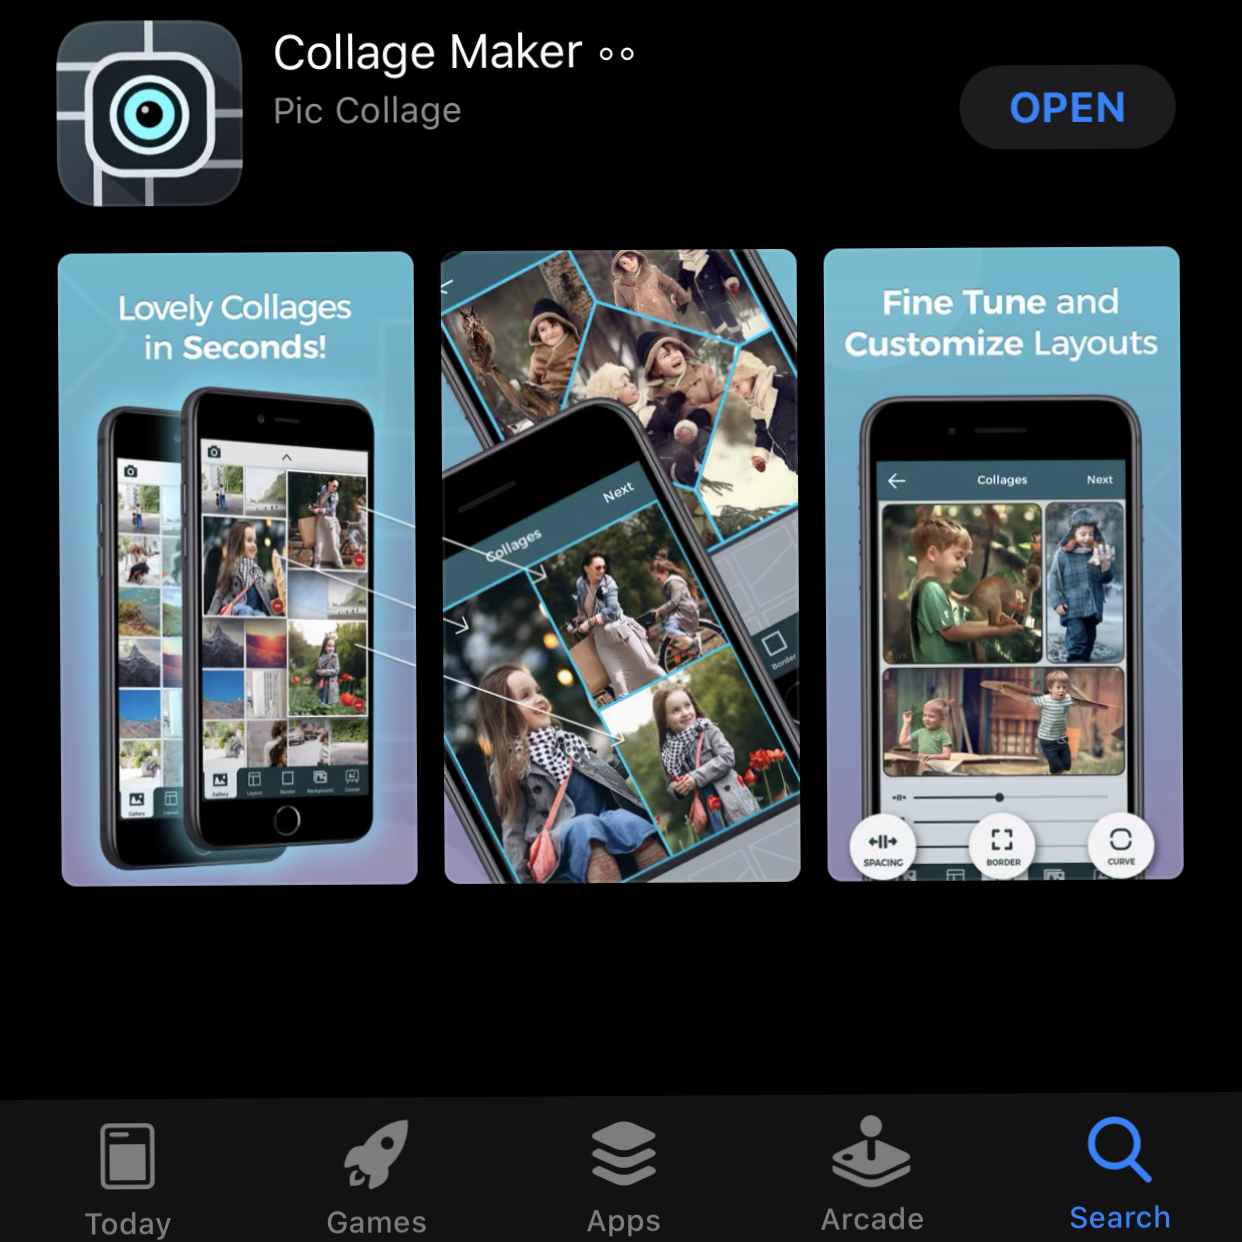 Download cShot from App Store.